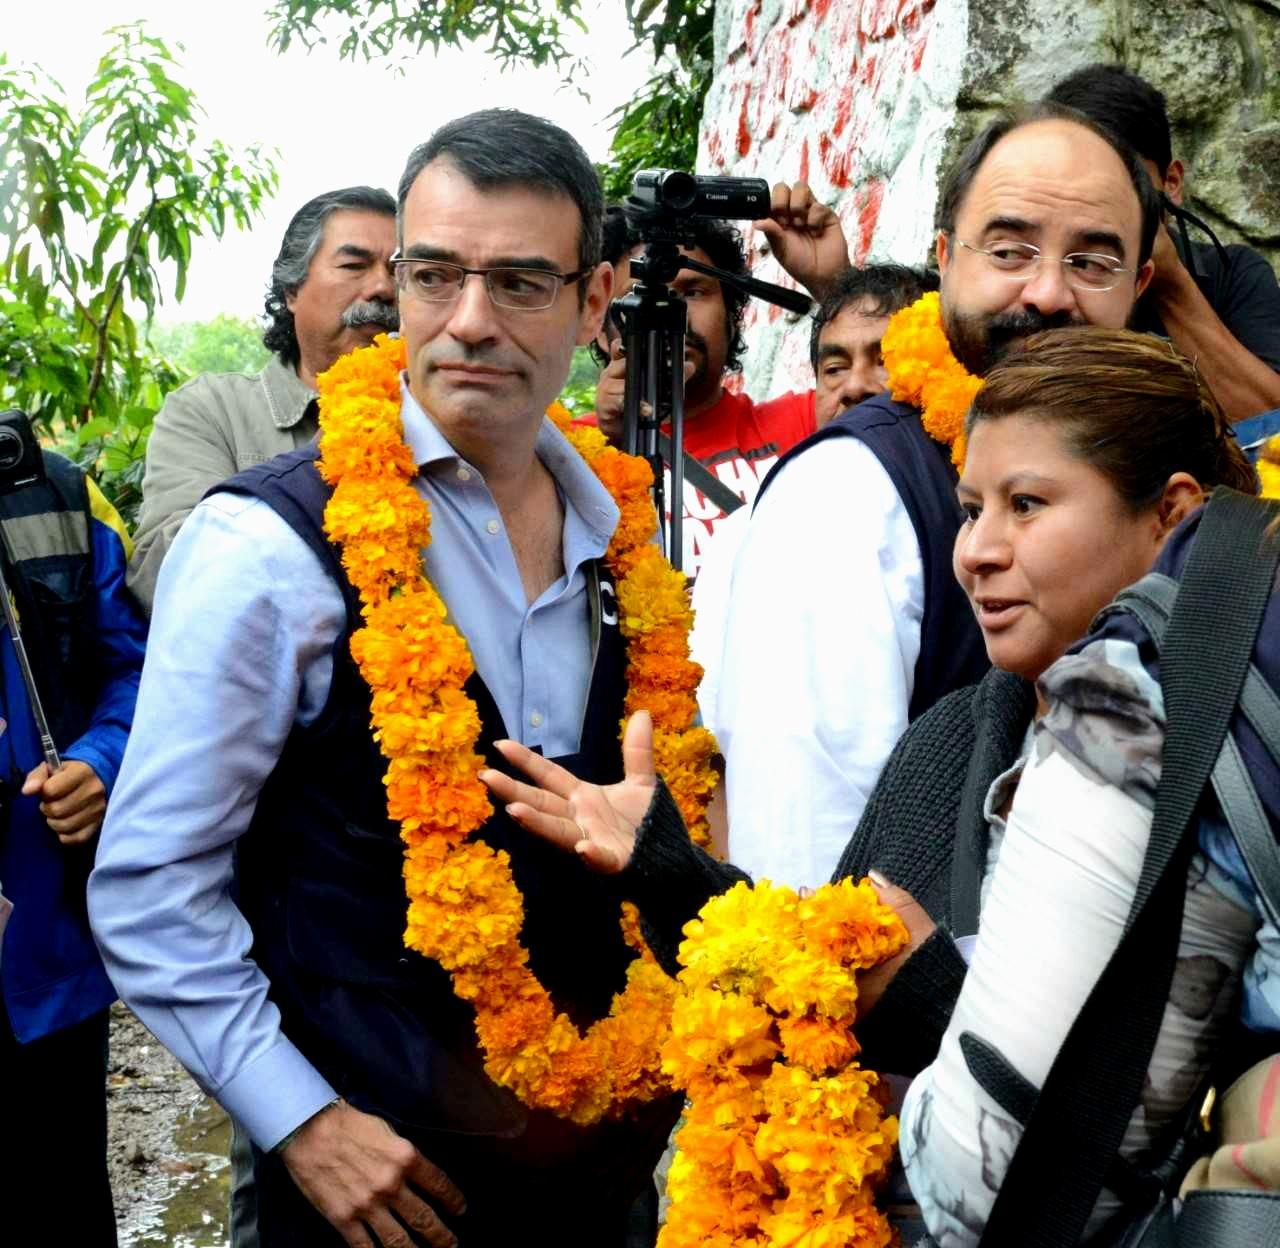 James Cavallaro, left, visiting the Ayotzinapa Teachers' College in 2015. In September 2014, Mexican state agents and others forcibly disappeared 43 students from that college.